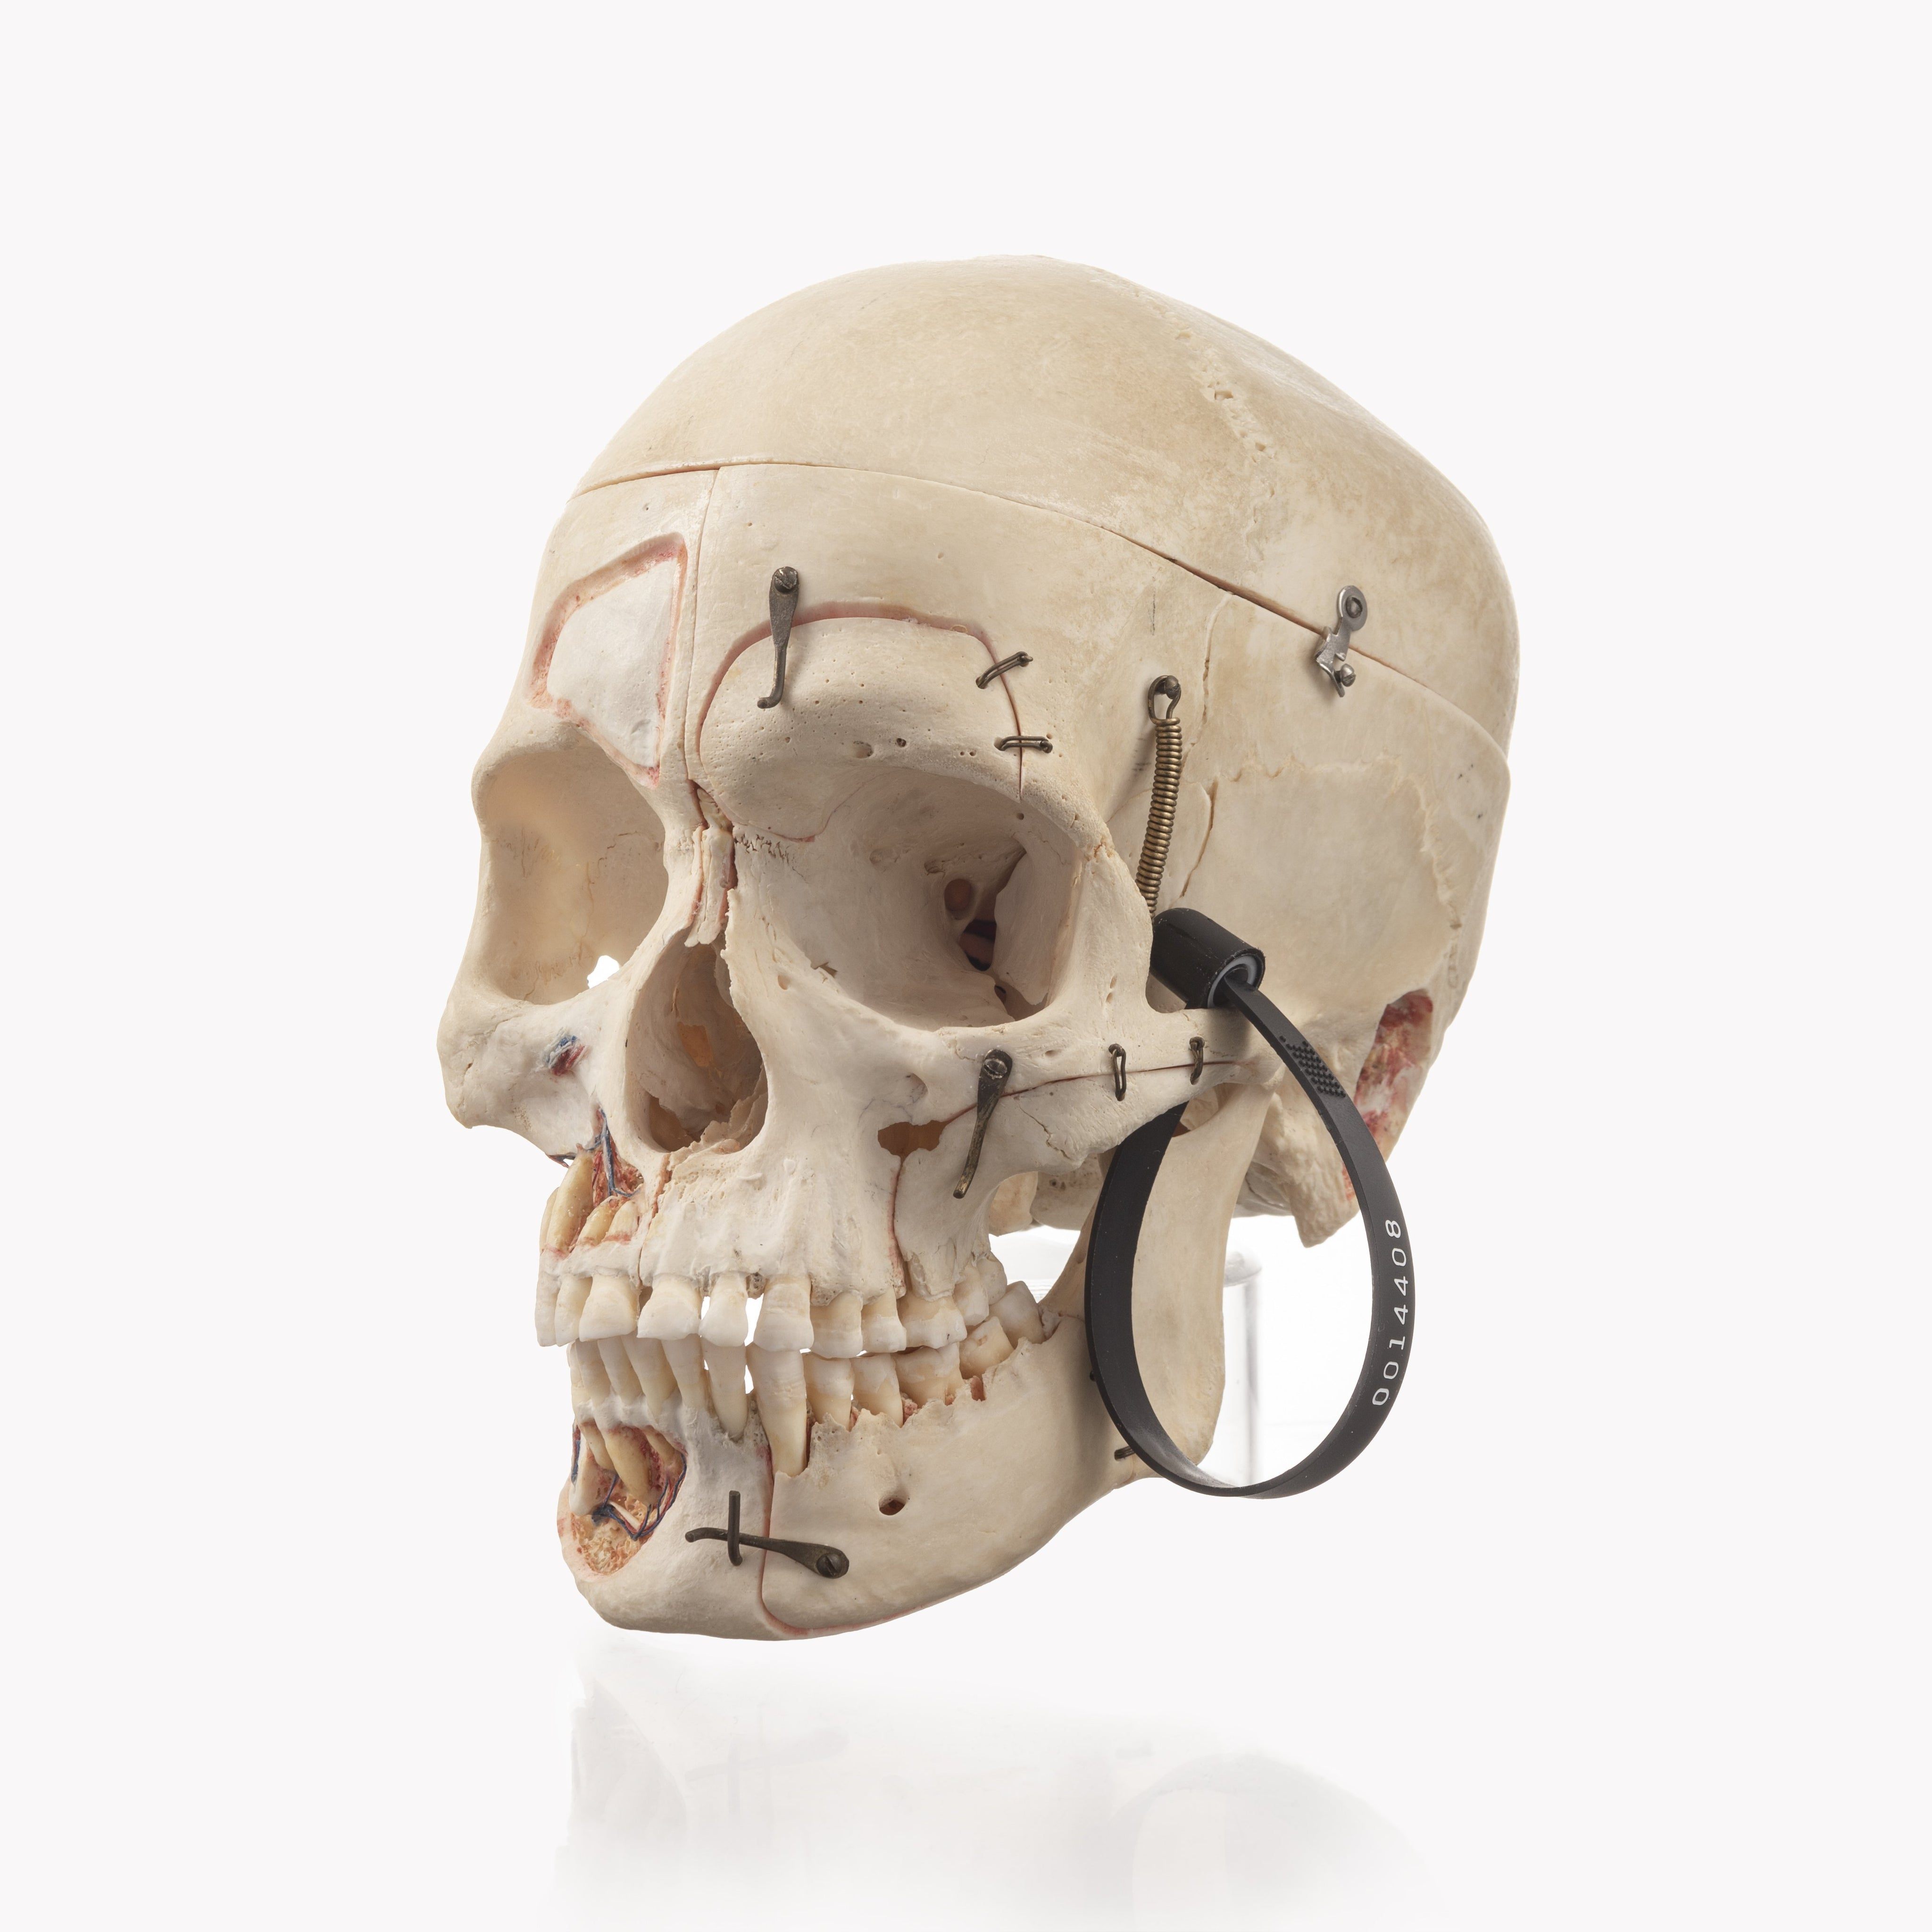 Real Dissected Human Skull For Sale Skulls Unlimited International